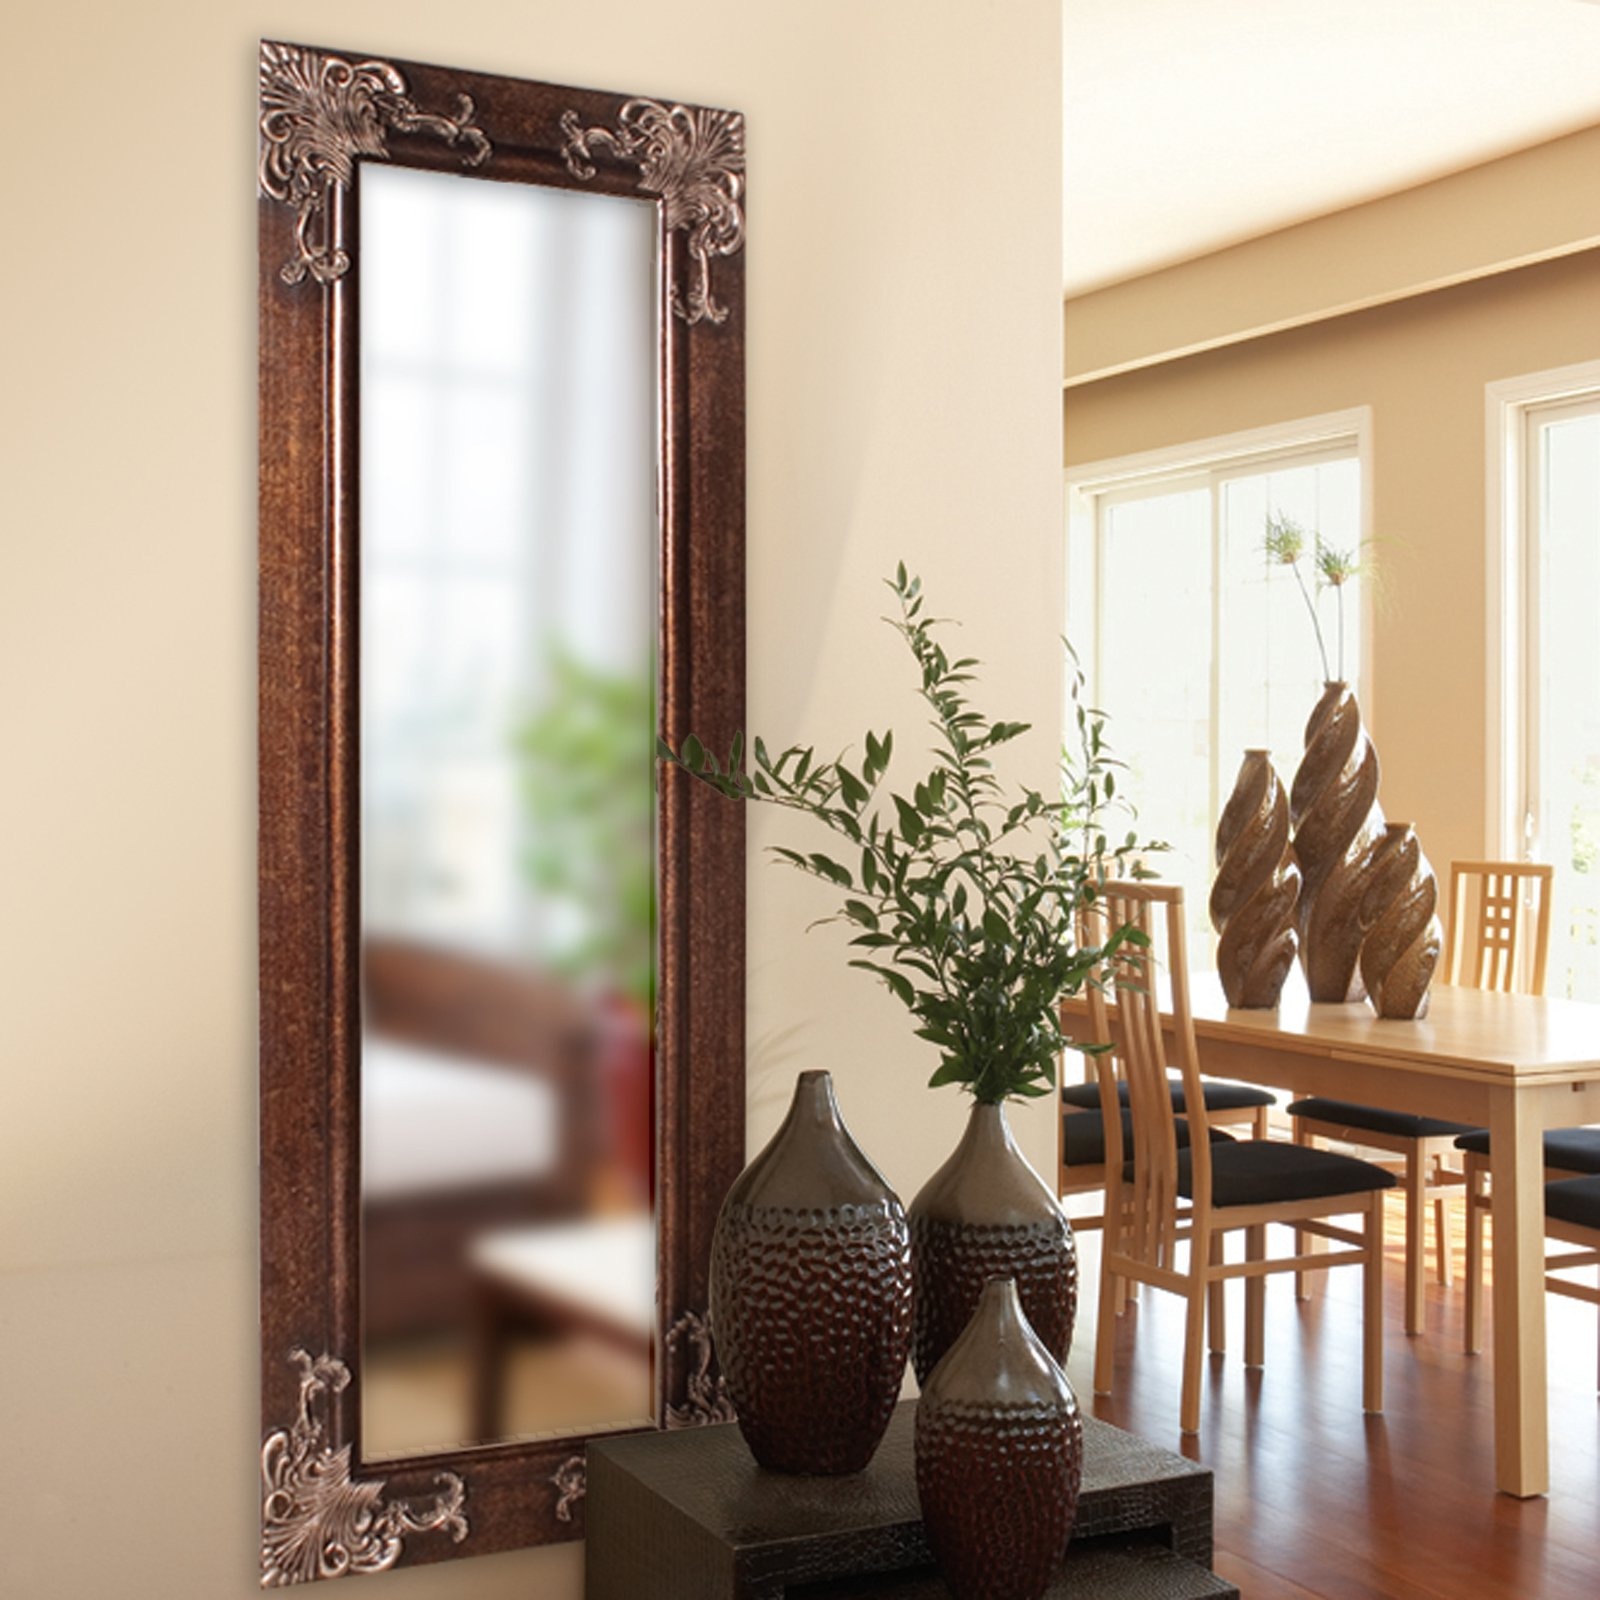 Belham Living Ashburn Full Length Wall Mirror - 24W x 63H in.